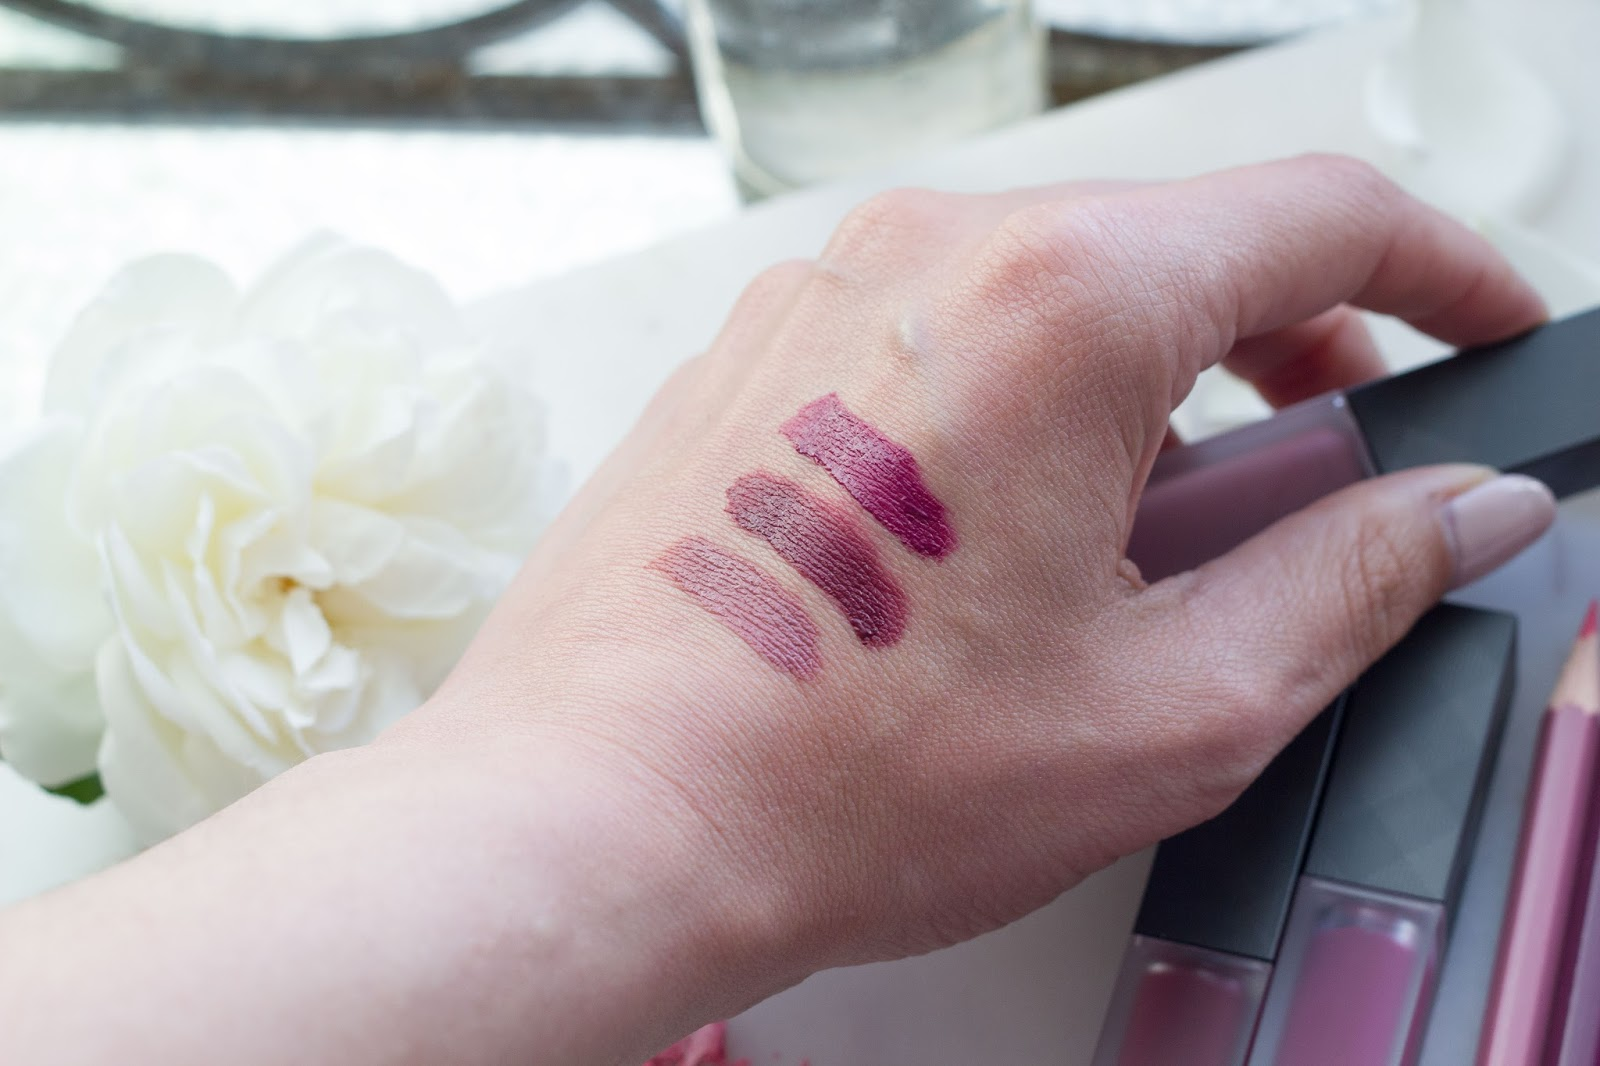 Burberry Beauty Liquid Lip Velvet color swatches, fawn, oxblood, bright plum